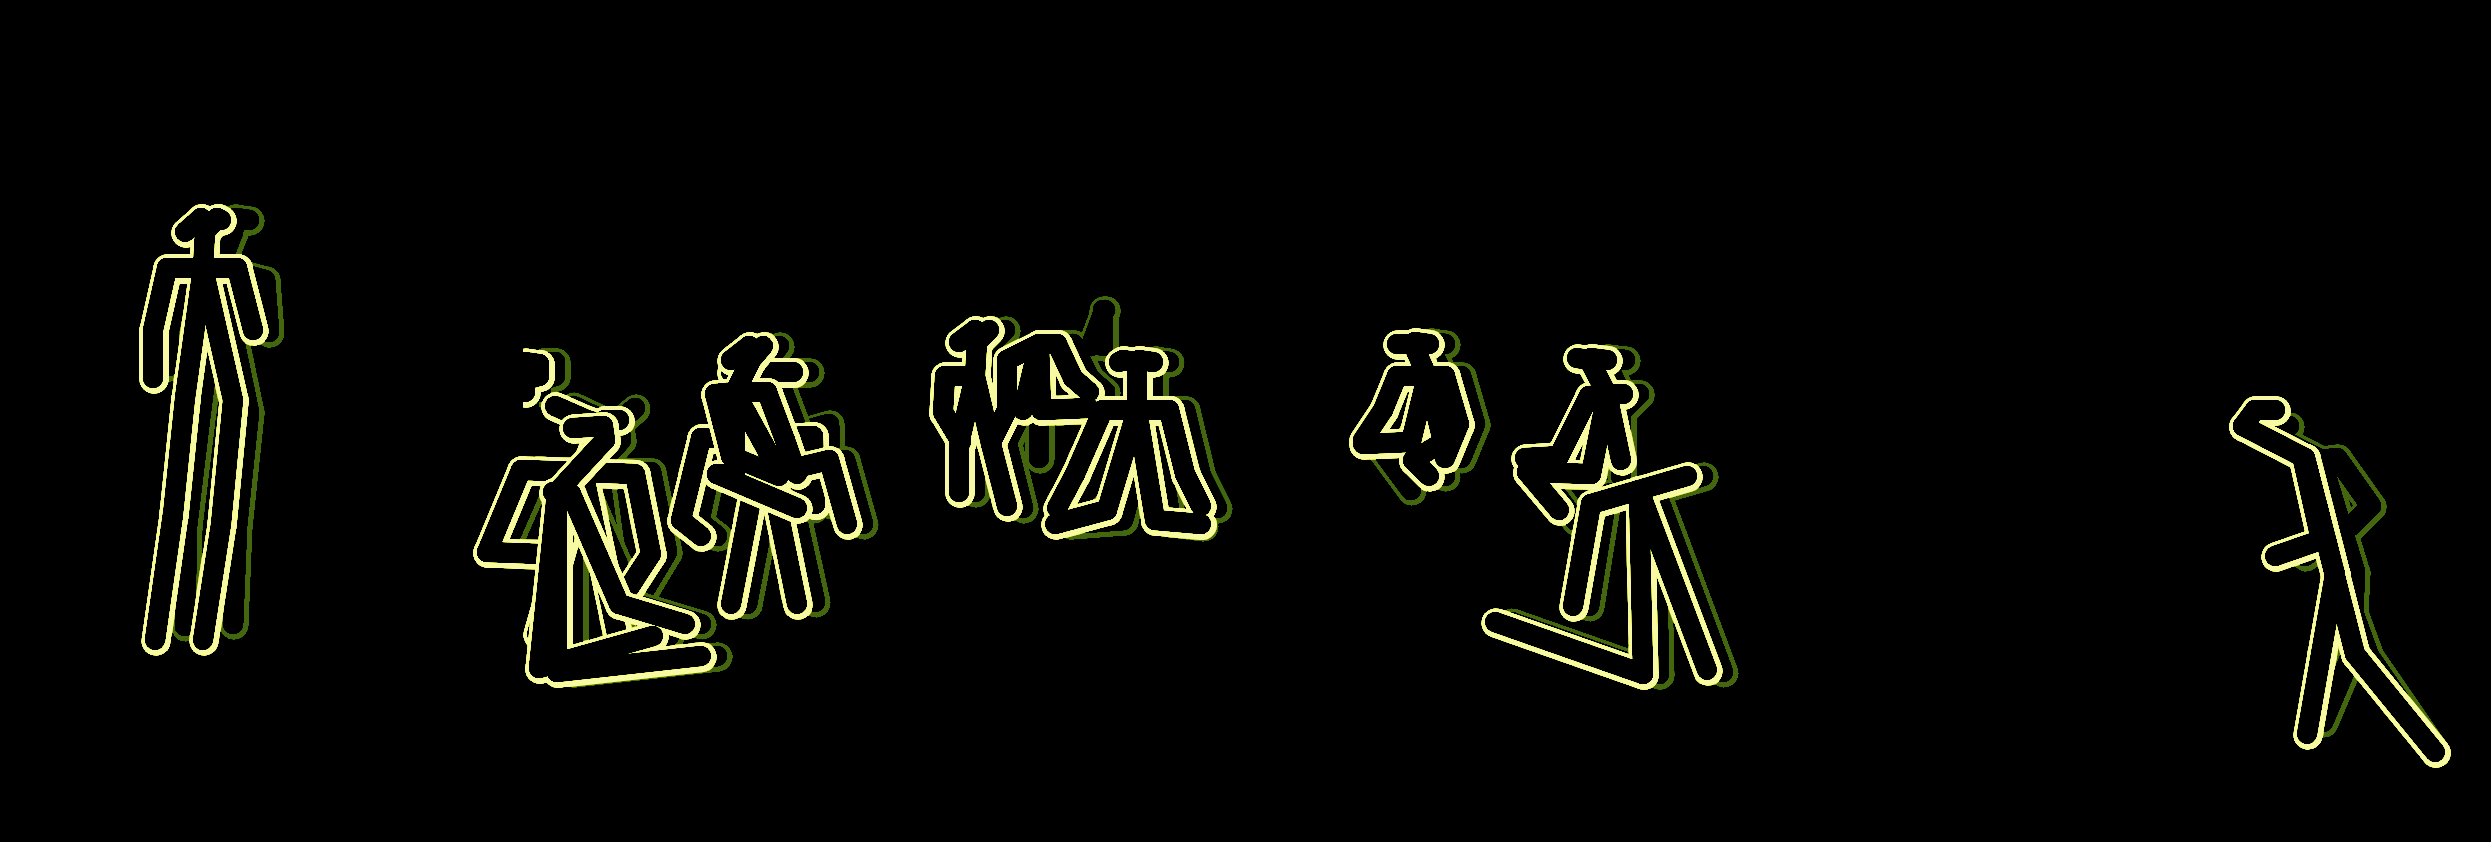 screenshot from superboneworld, yellow stick figures in various poses, sitting, standing, walking, on a black background